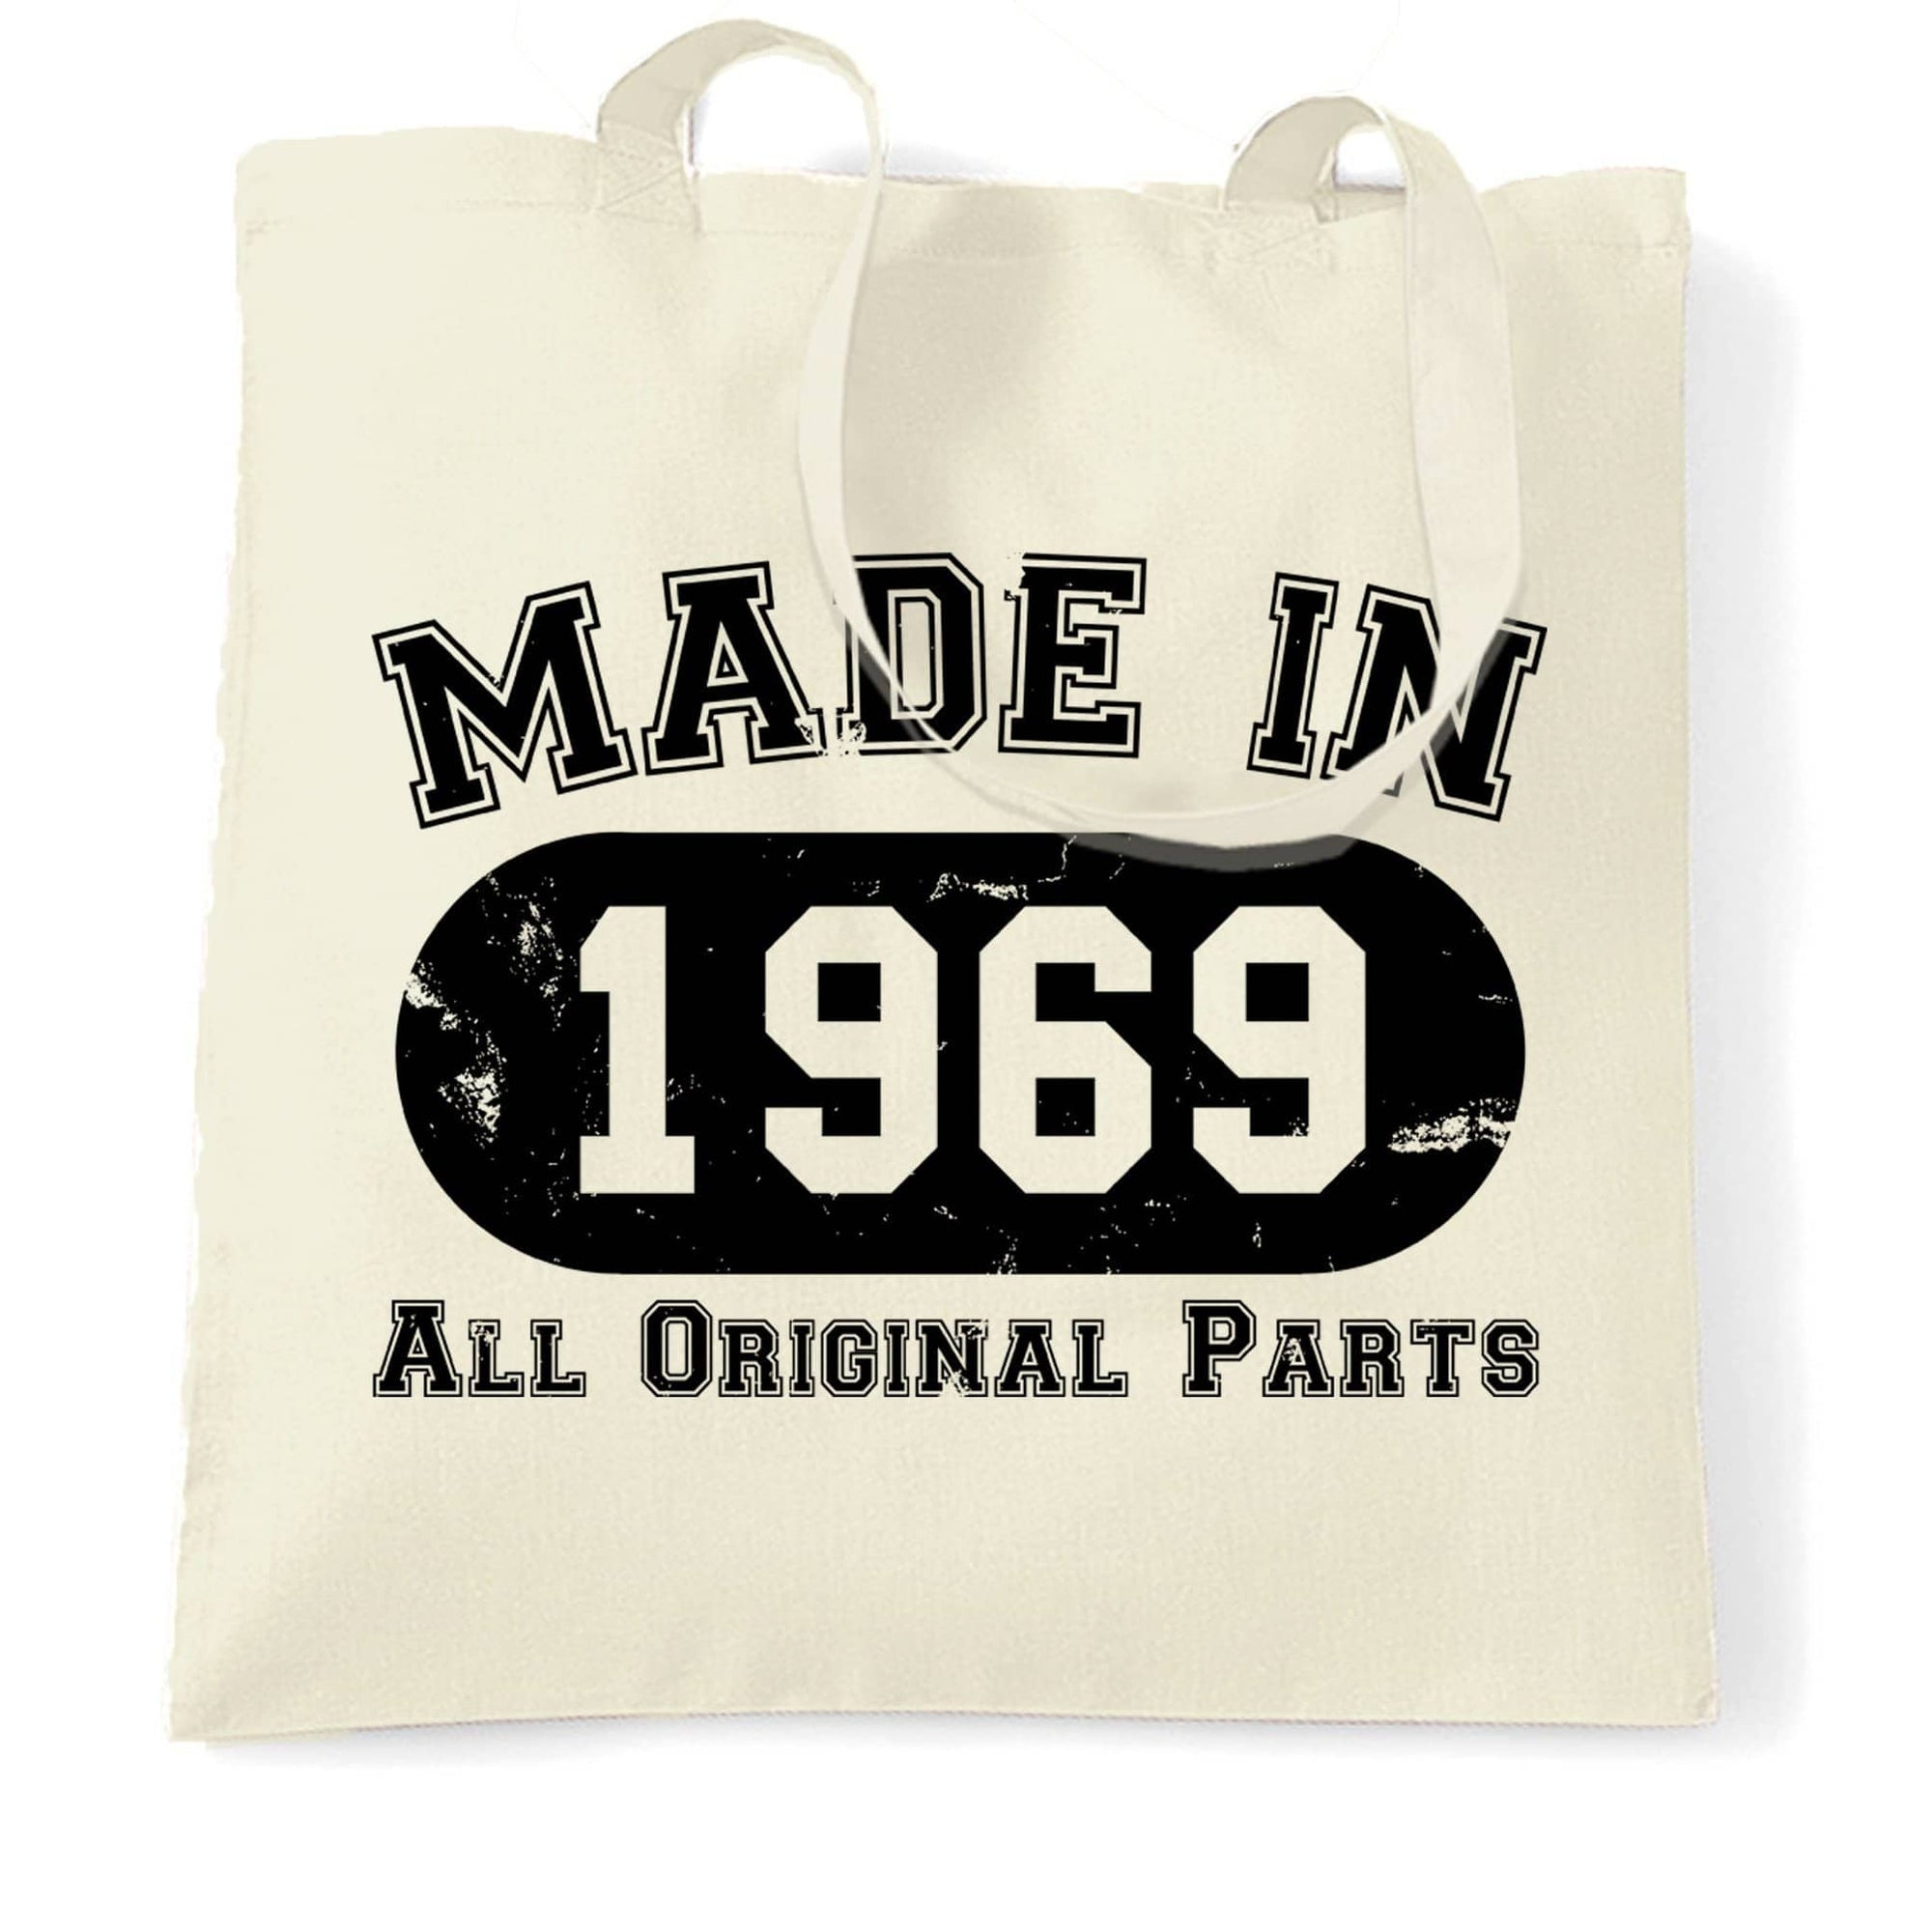 Made in 1969 All Original Parts Tote Bag [Distressed]